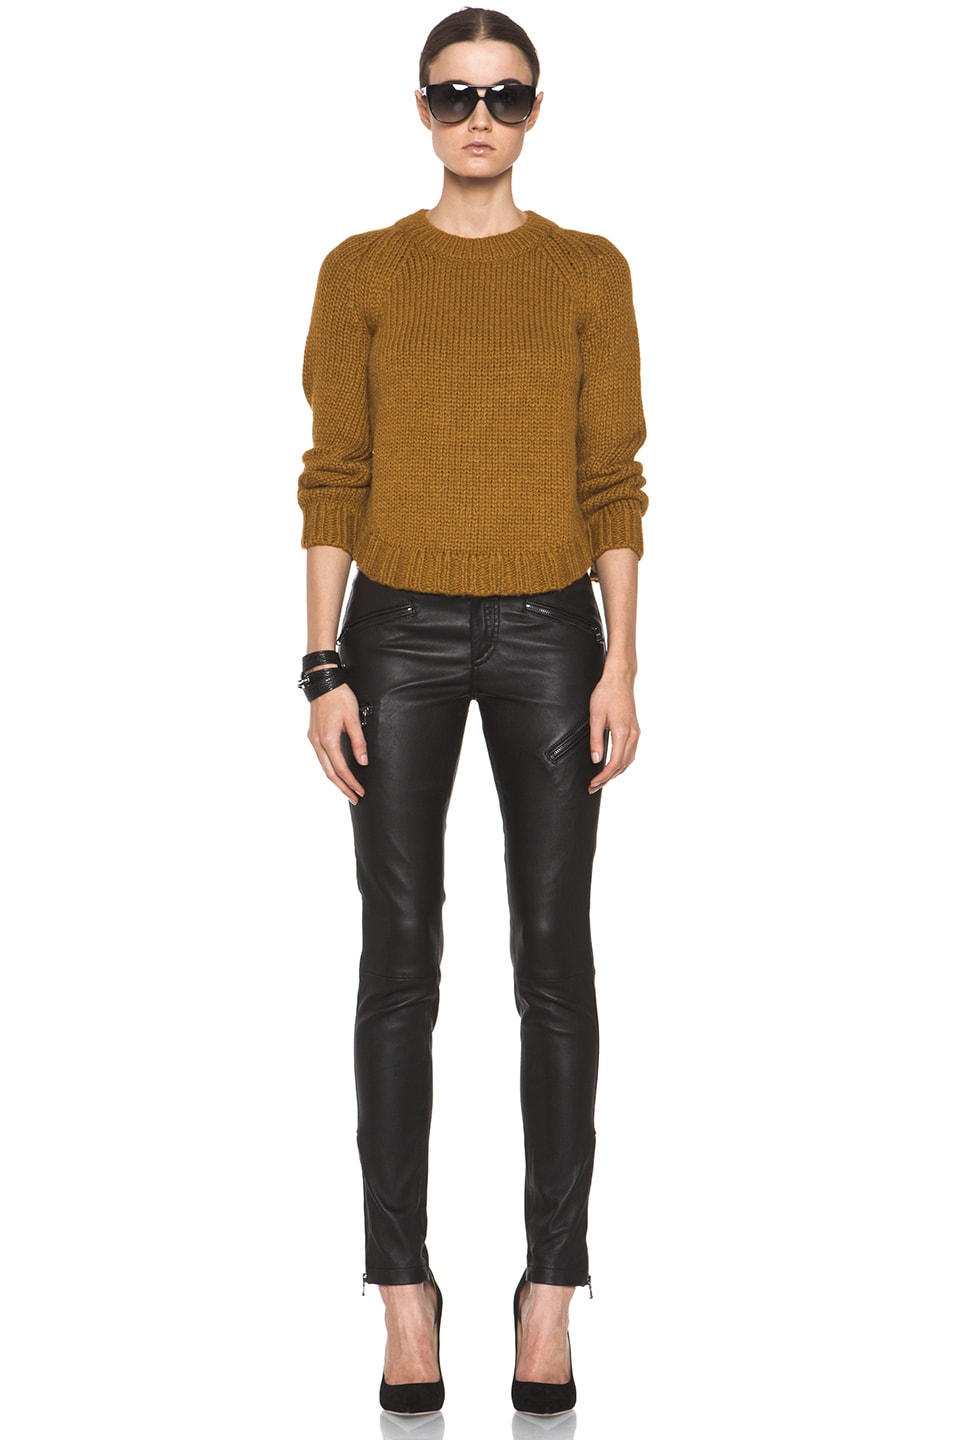 Image 5 of Theyskens' Theory Knop Yourney Sweater in Mustard